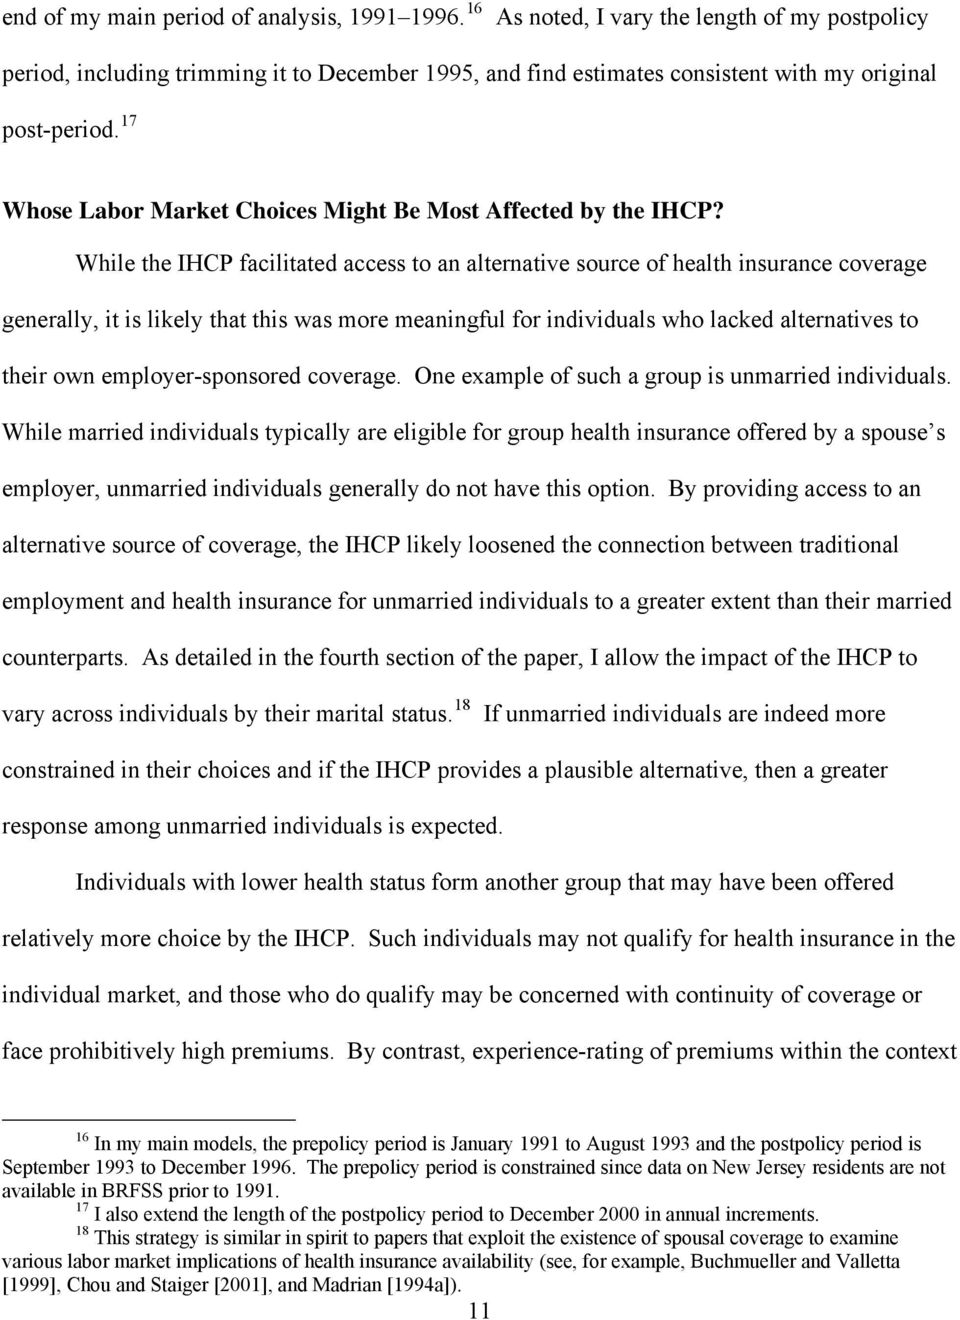 17 Whose Labor Market Choices Might Be Most Affected by the IHCP?